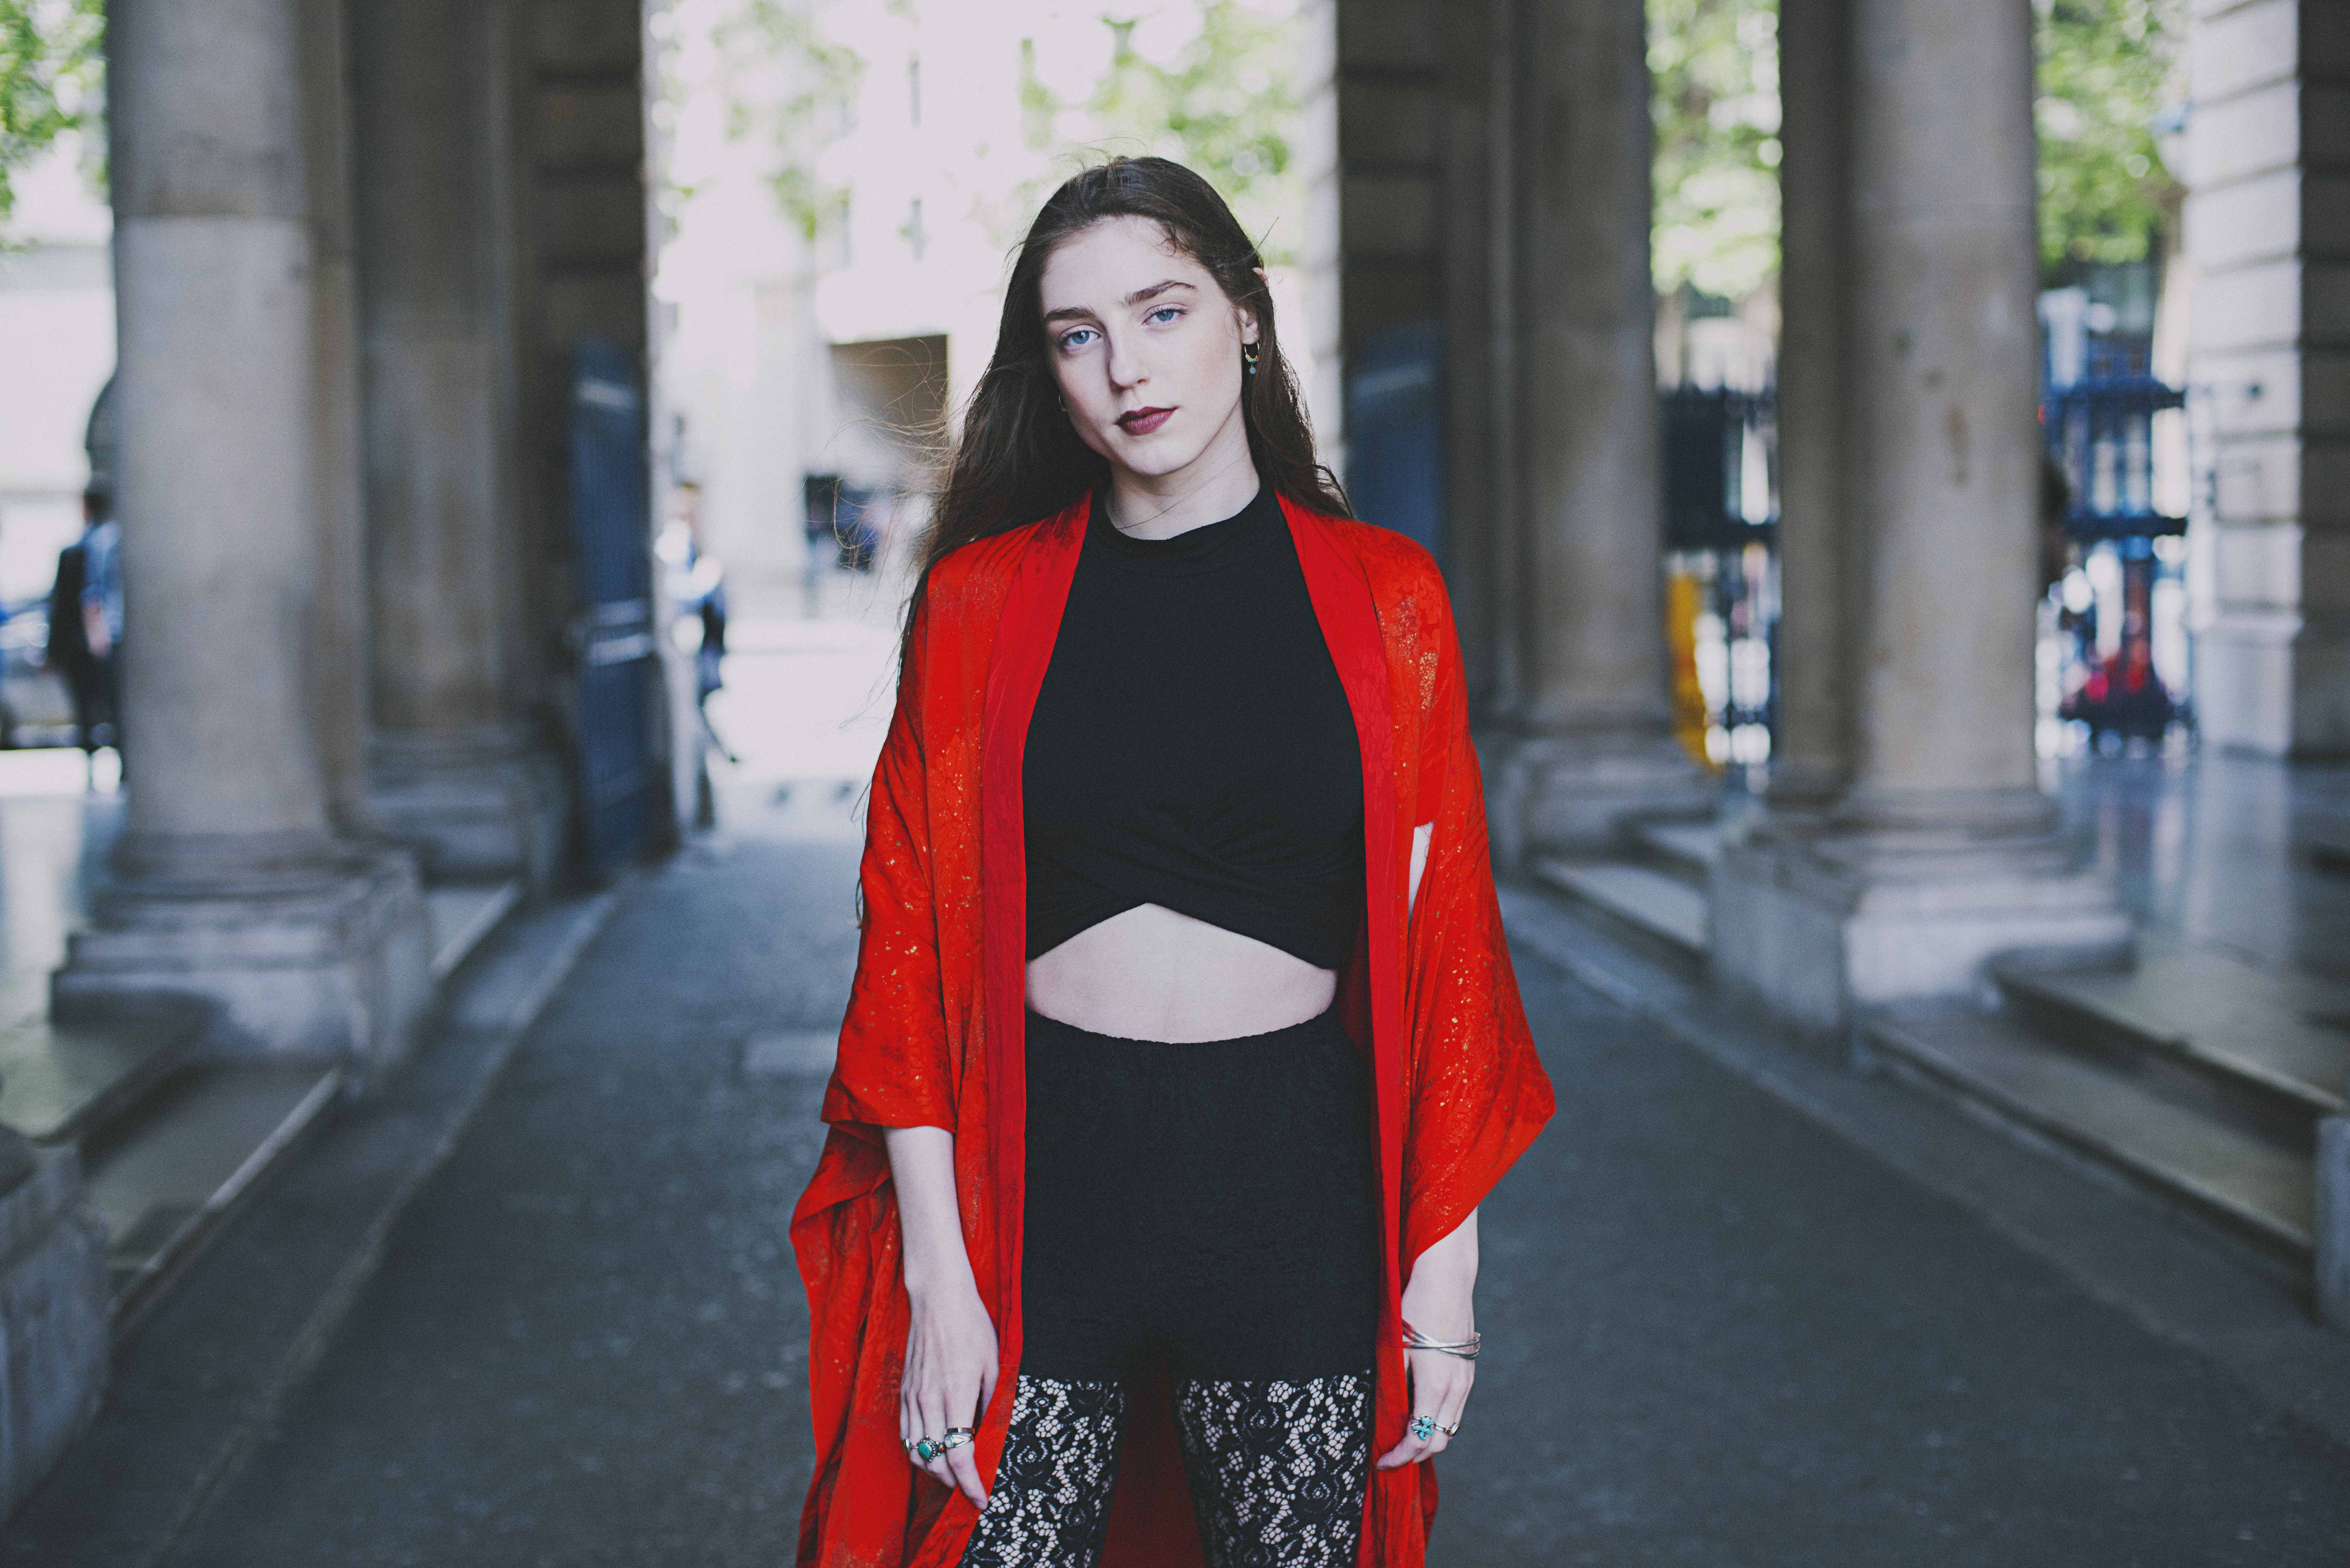 Short form picture caption: Birdy teams up with American Express® to perform an exclusive, acoustic set underneath the iconic courtyard location of London's Summer Series at Somerset House music festival where she will be performing on 12 July.   Long form picture caption: Critically acclaimed singer/songwriter Birdy teams up with American Express® to perform an exclusive, acoustic three-track set at Somerset House, underneath the courtyard of the iconic London venue where she will be performing on 12 July.   Summer Series at Somerset House forms part of American Express' Invites programme, which gets its Cardmembers closer to the things they love with the best seats, exclusive offers and early on-sale tickets to the UK's most sought after entertainment events.